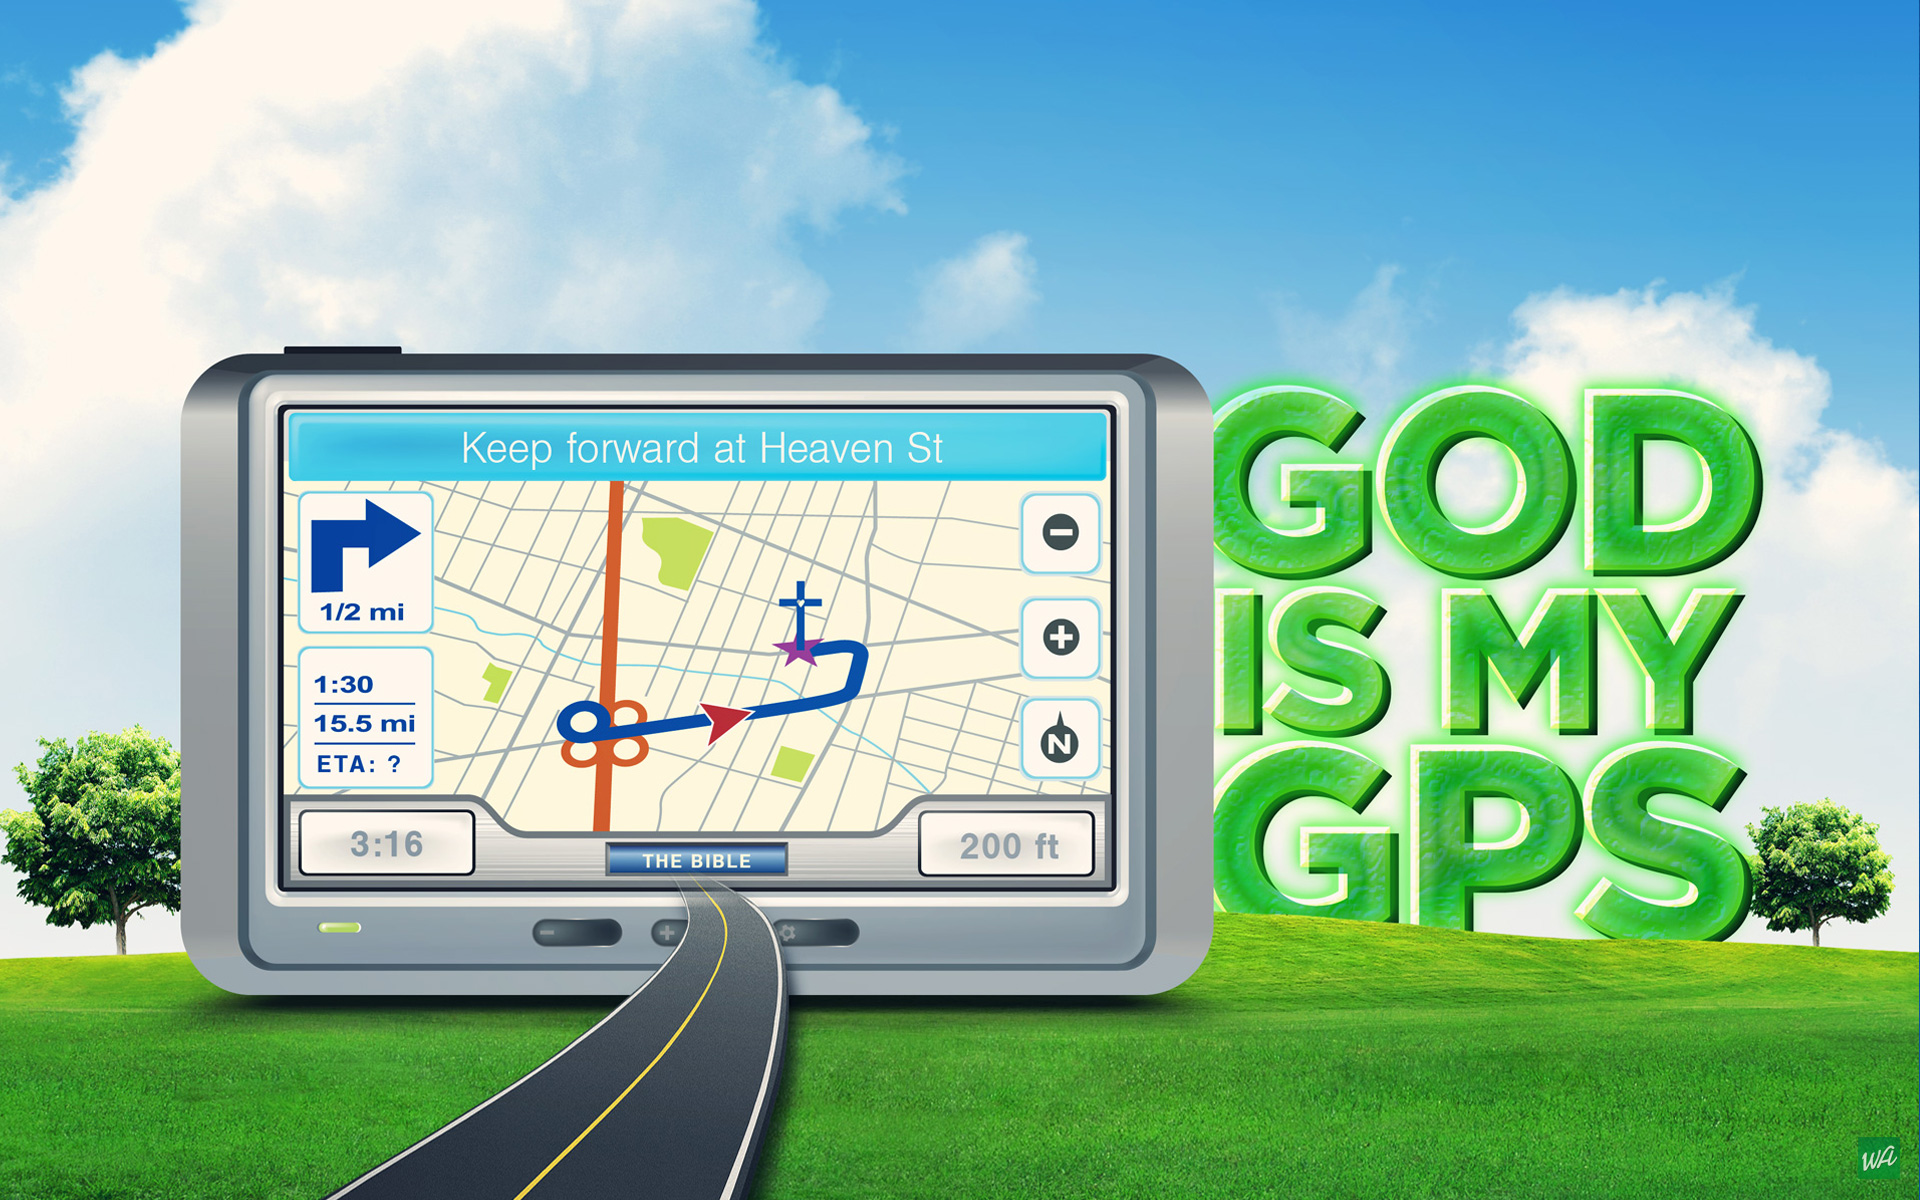 GOD IS MY GPS